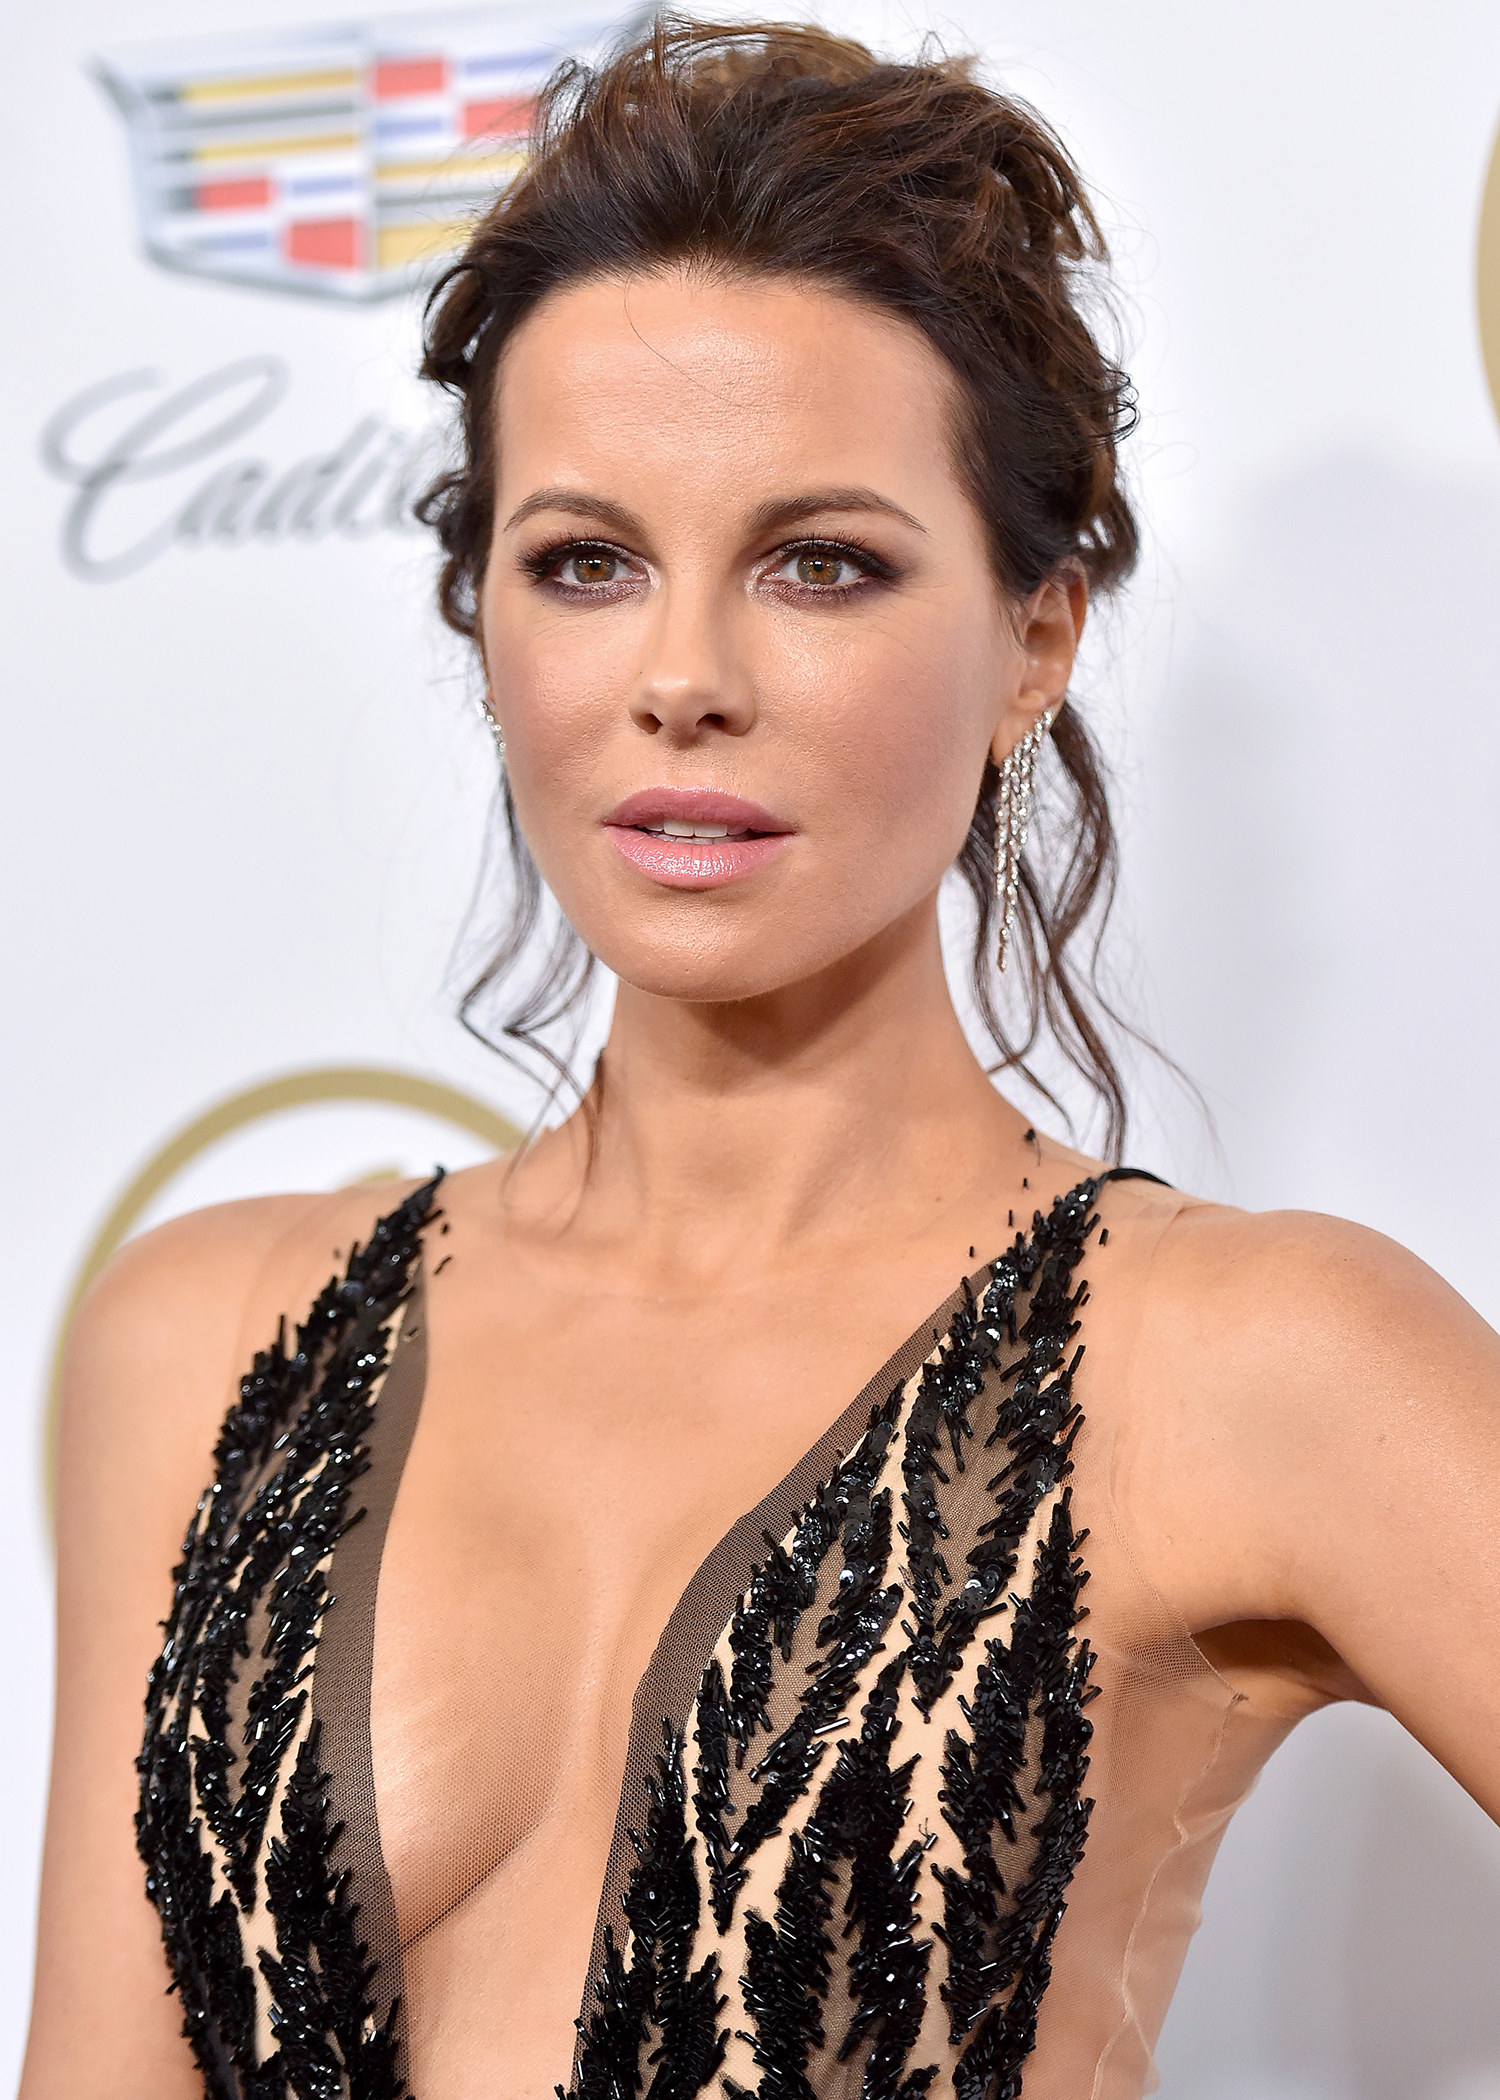 Fappening Kate Beckinsale  nude (19 images), Instagram, cleavage